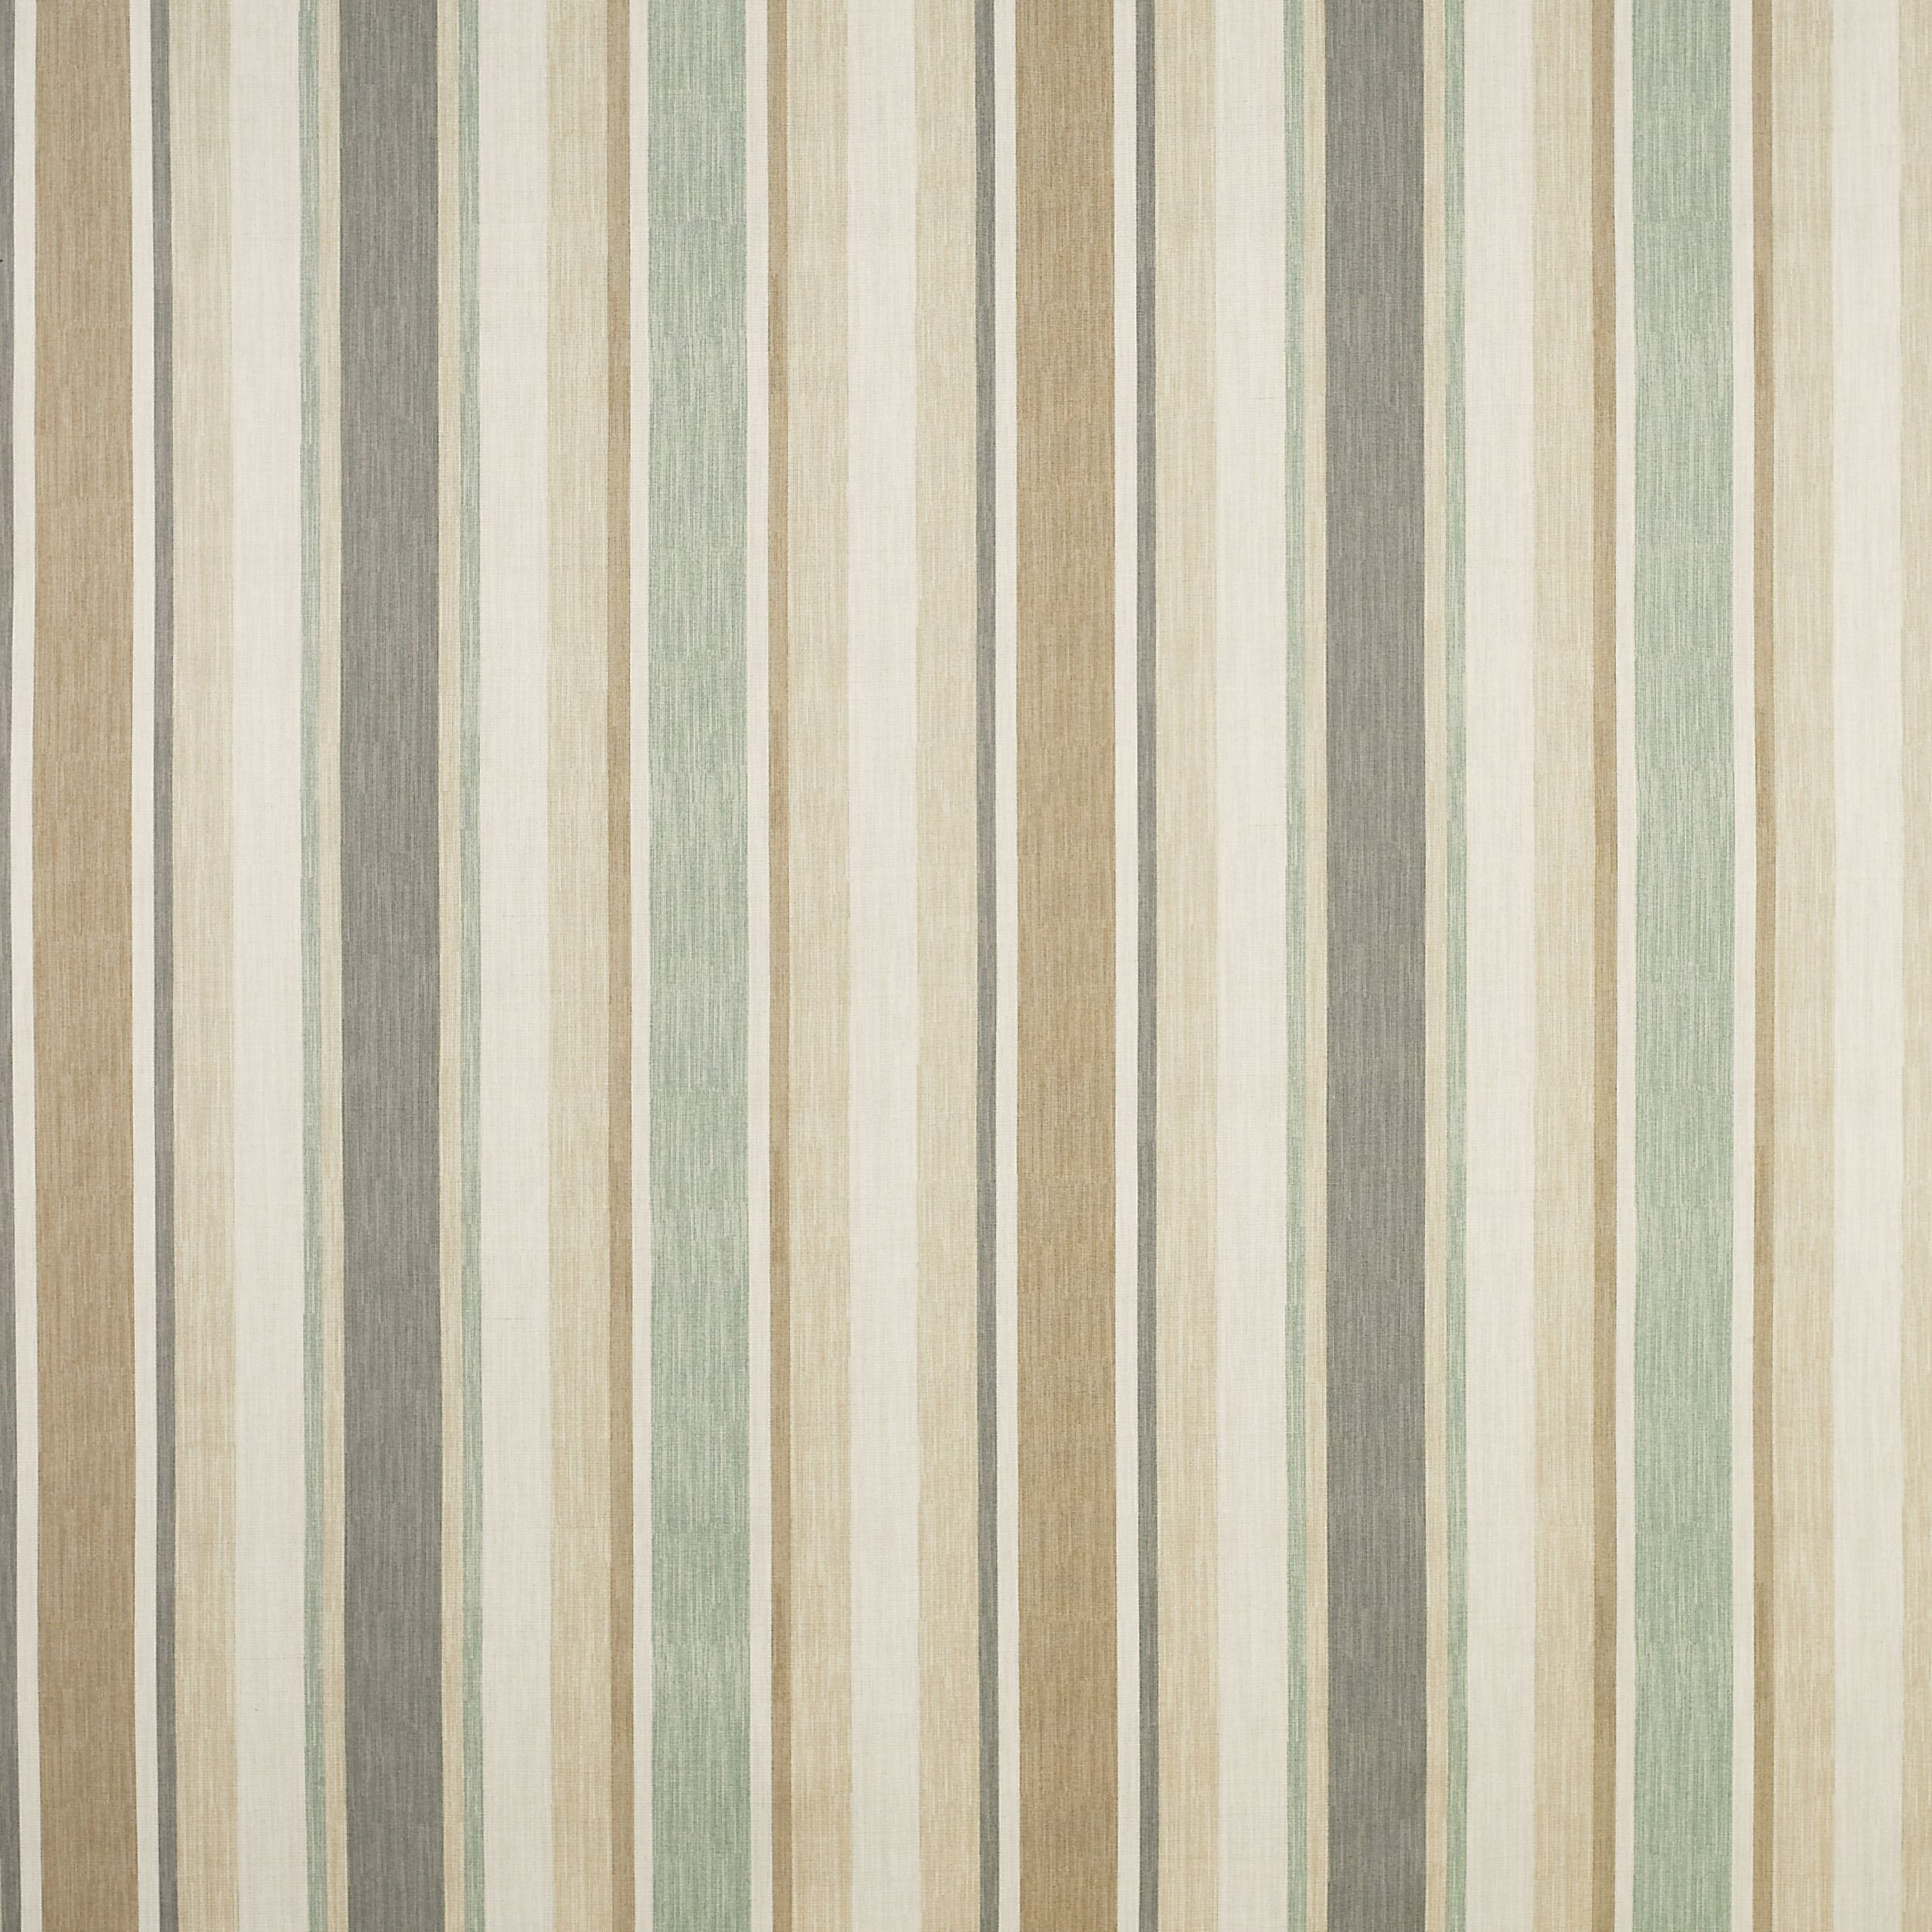 Awning Stripe Cotton/Linen Fabric Biscuit/Eau De Nil At LAURA ASHLEY For A Roman Blind